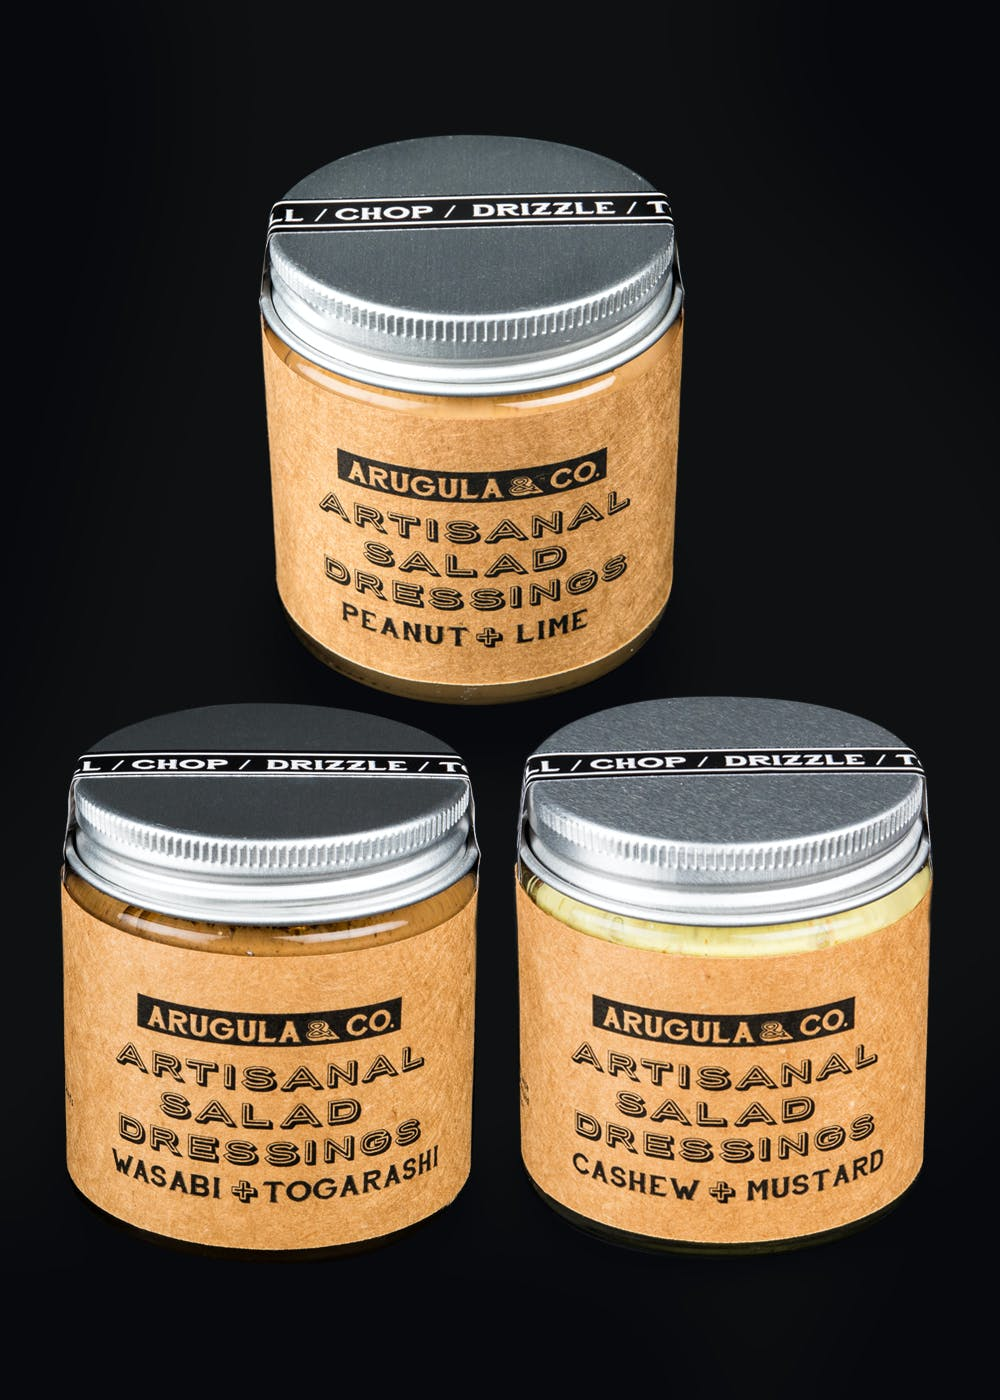 The Nut Butter Selection Pack Salad Dressing